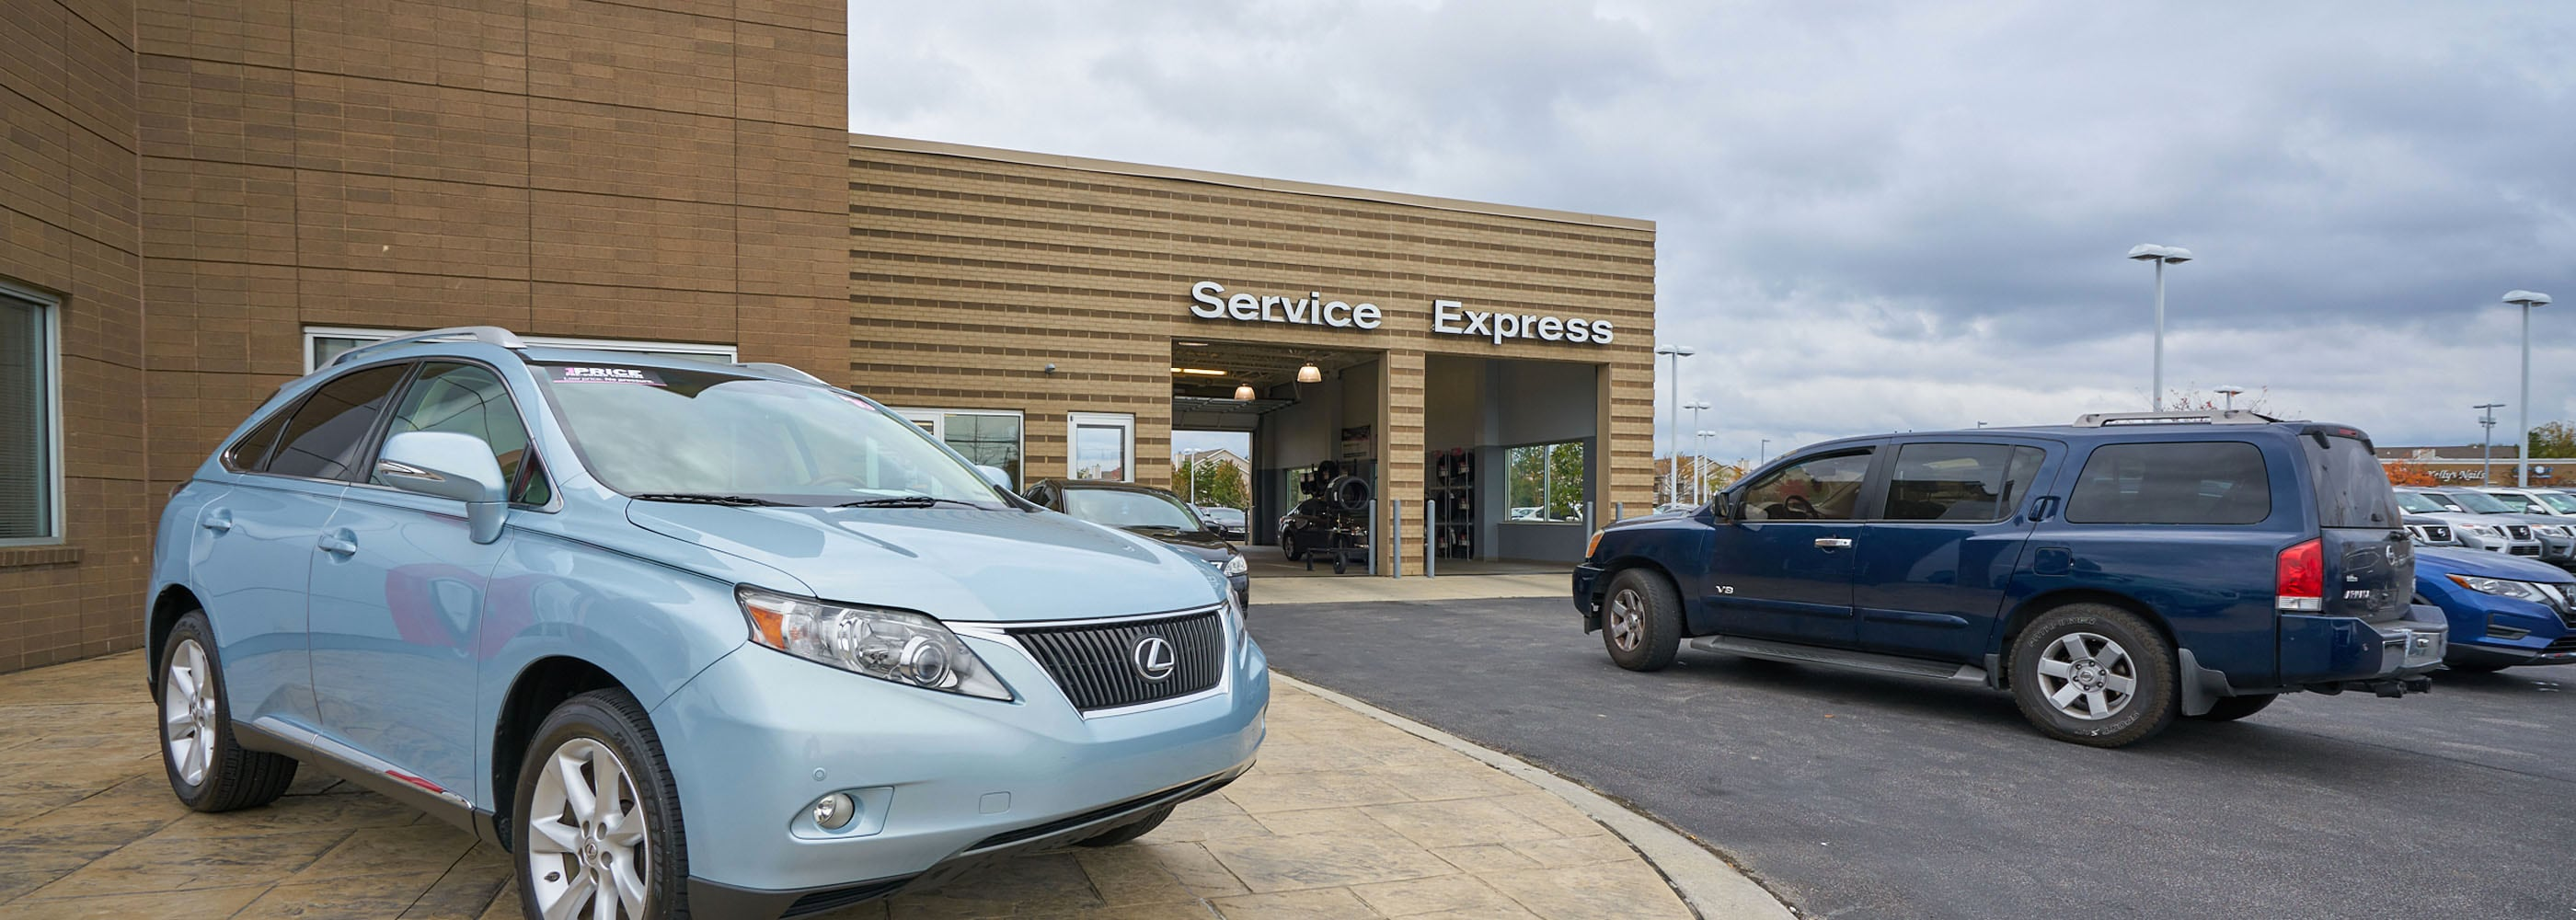 Nissan Dealership Memphis >> Autonation Nissan Memphis Nissan Service Center Oil Changes More